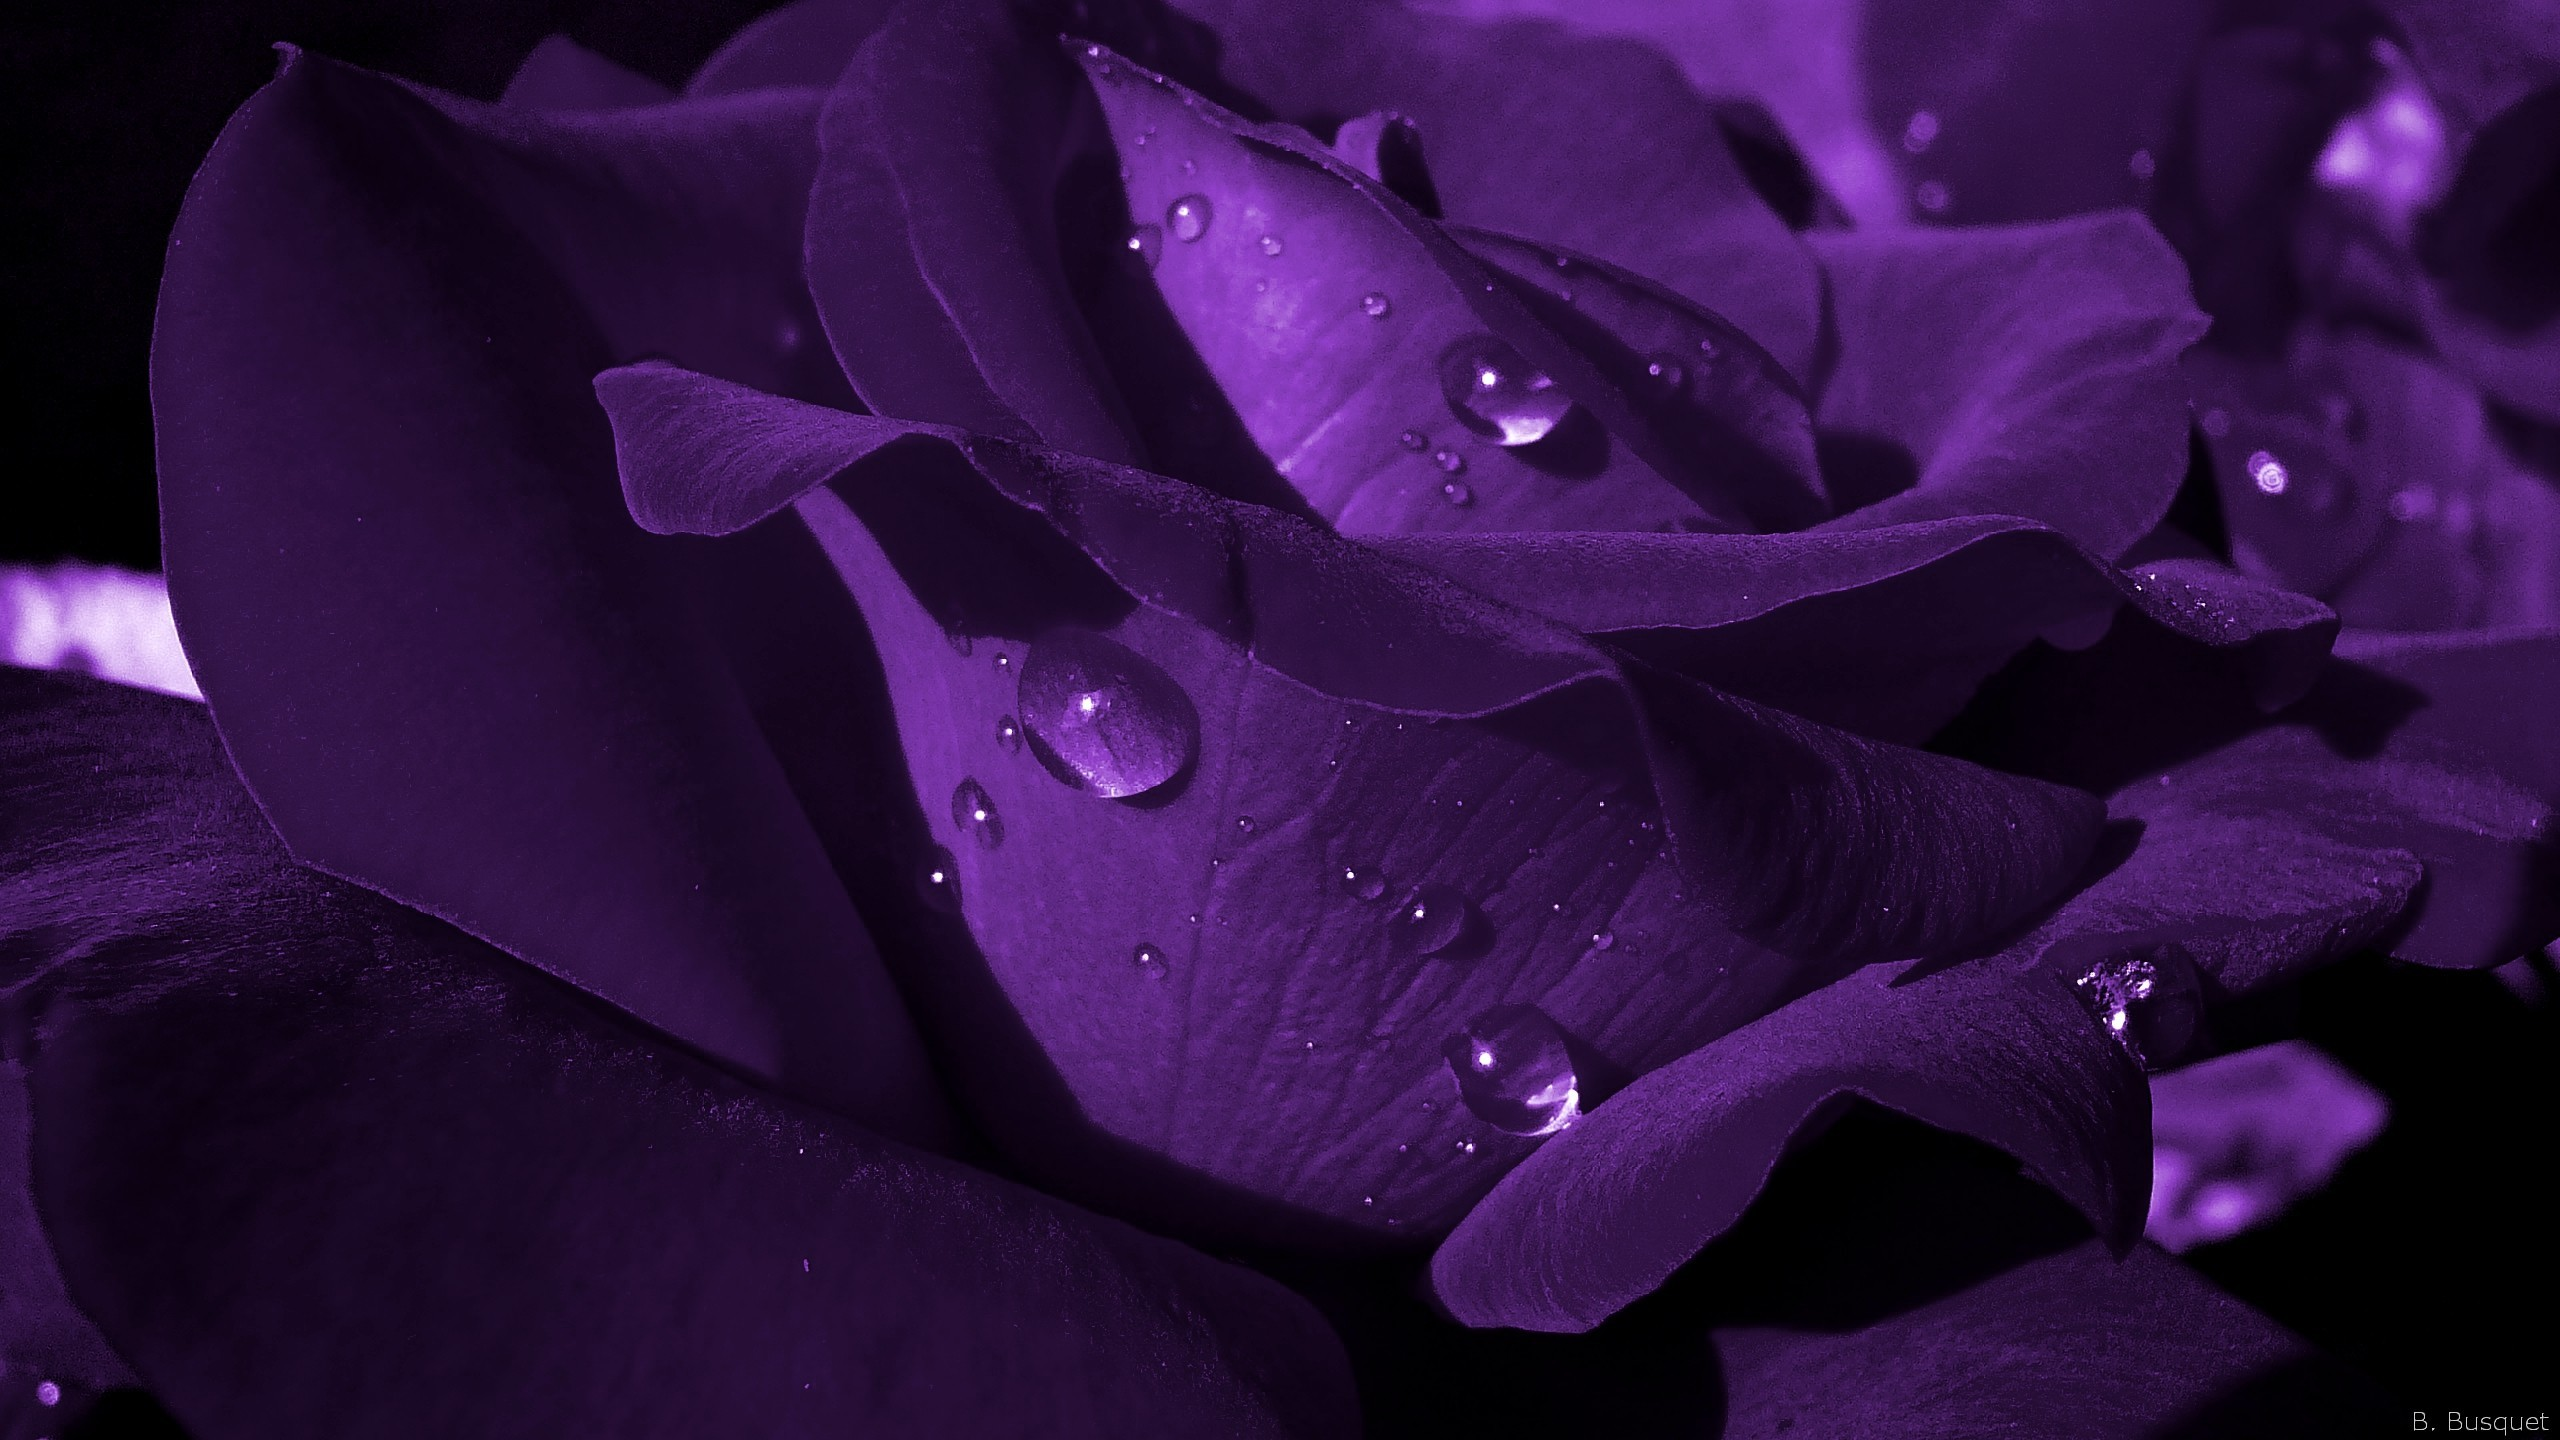 Purple Rose Wallpaper Mobile Very High Resolution Wallpapers px MB